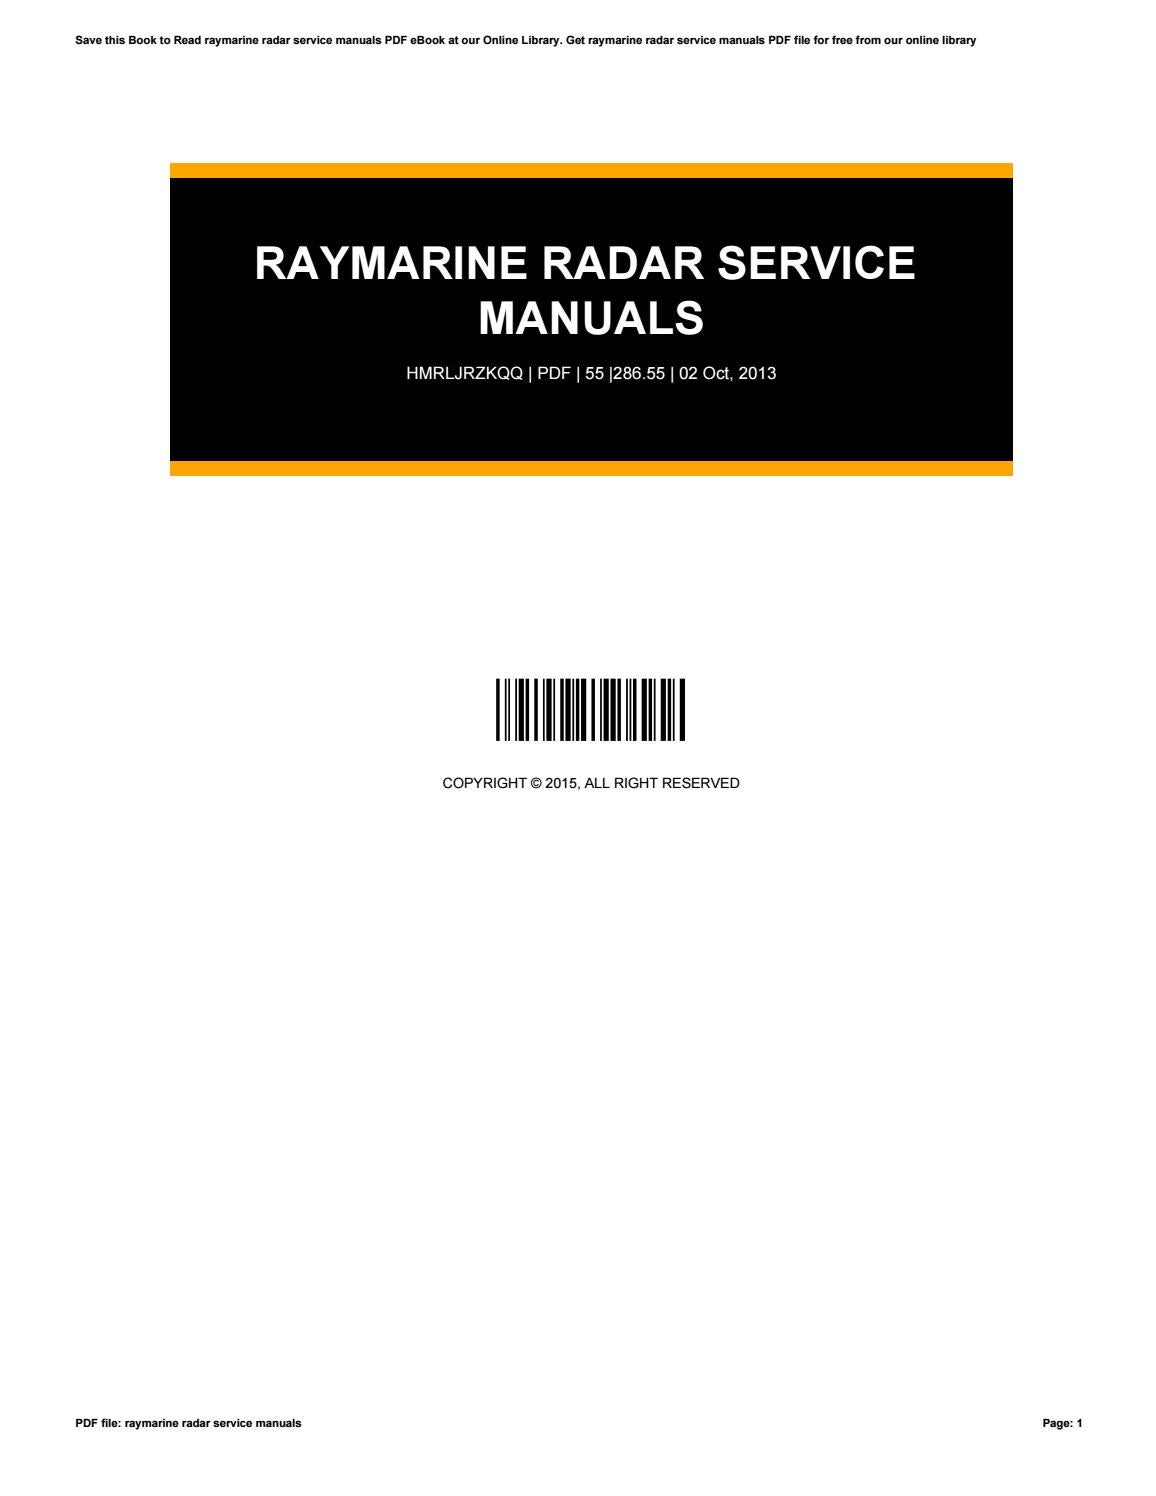 Raymarine radar service manuals by WadeGarcia - issuu